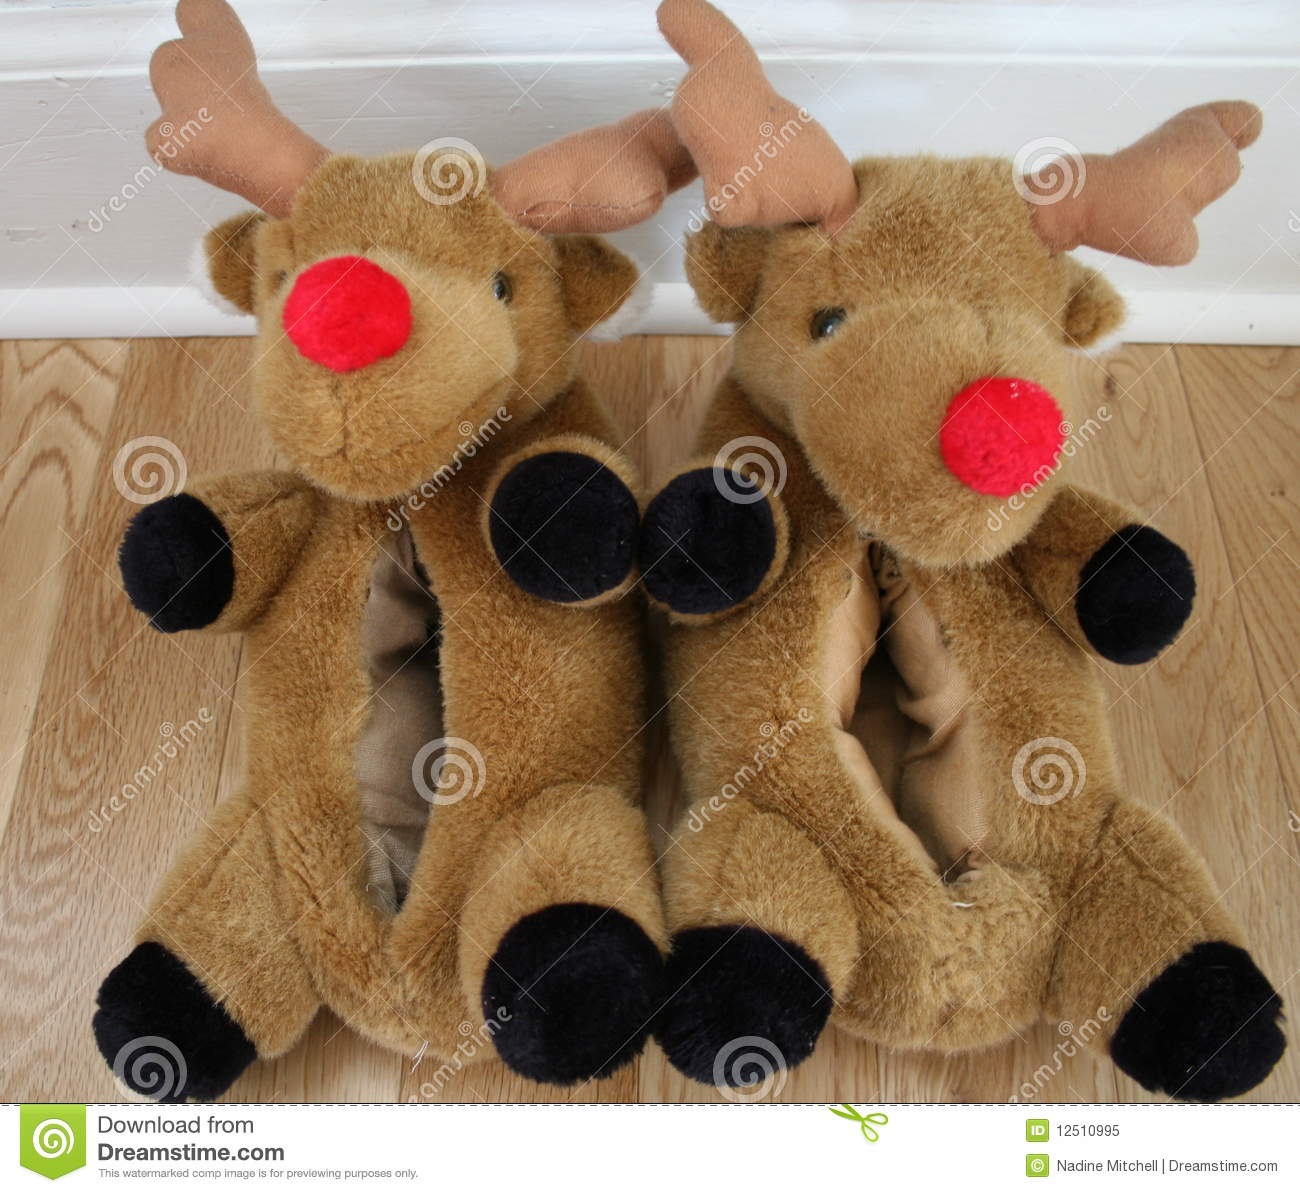 c110cb0212a Reindeer slippers with red noses worn by children and adults